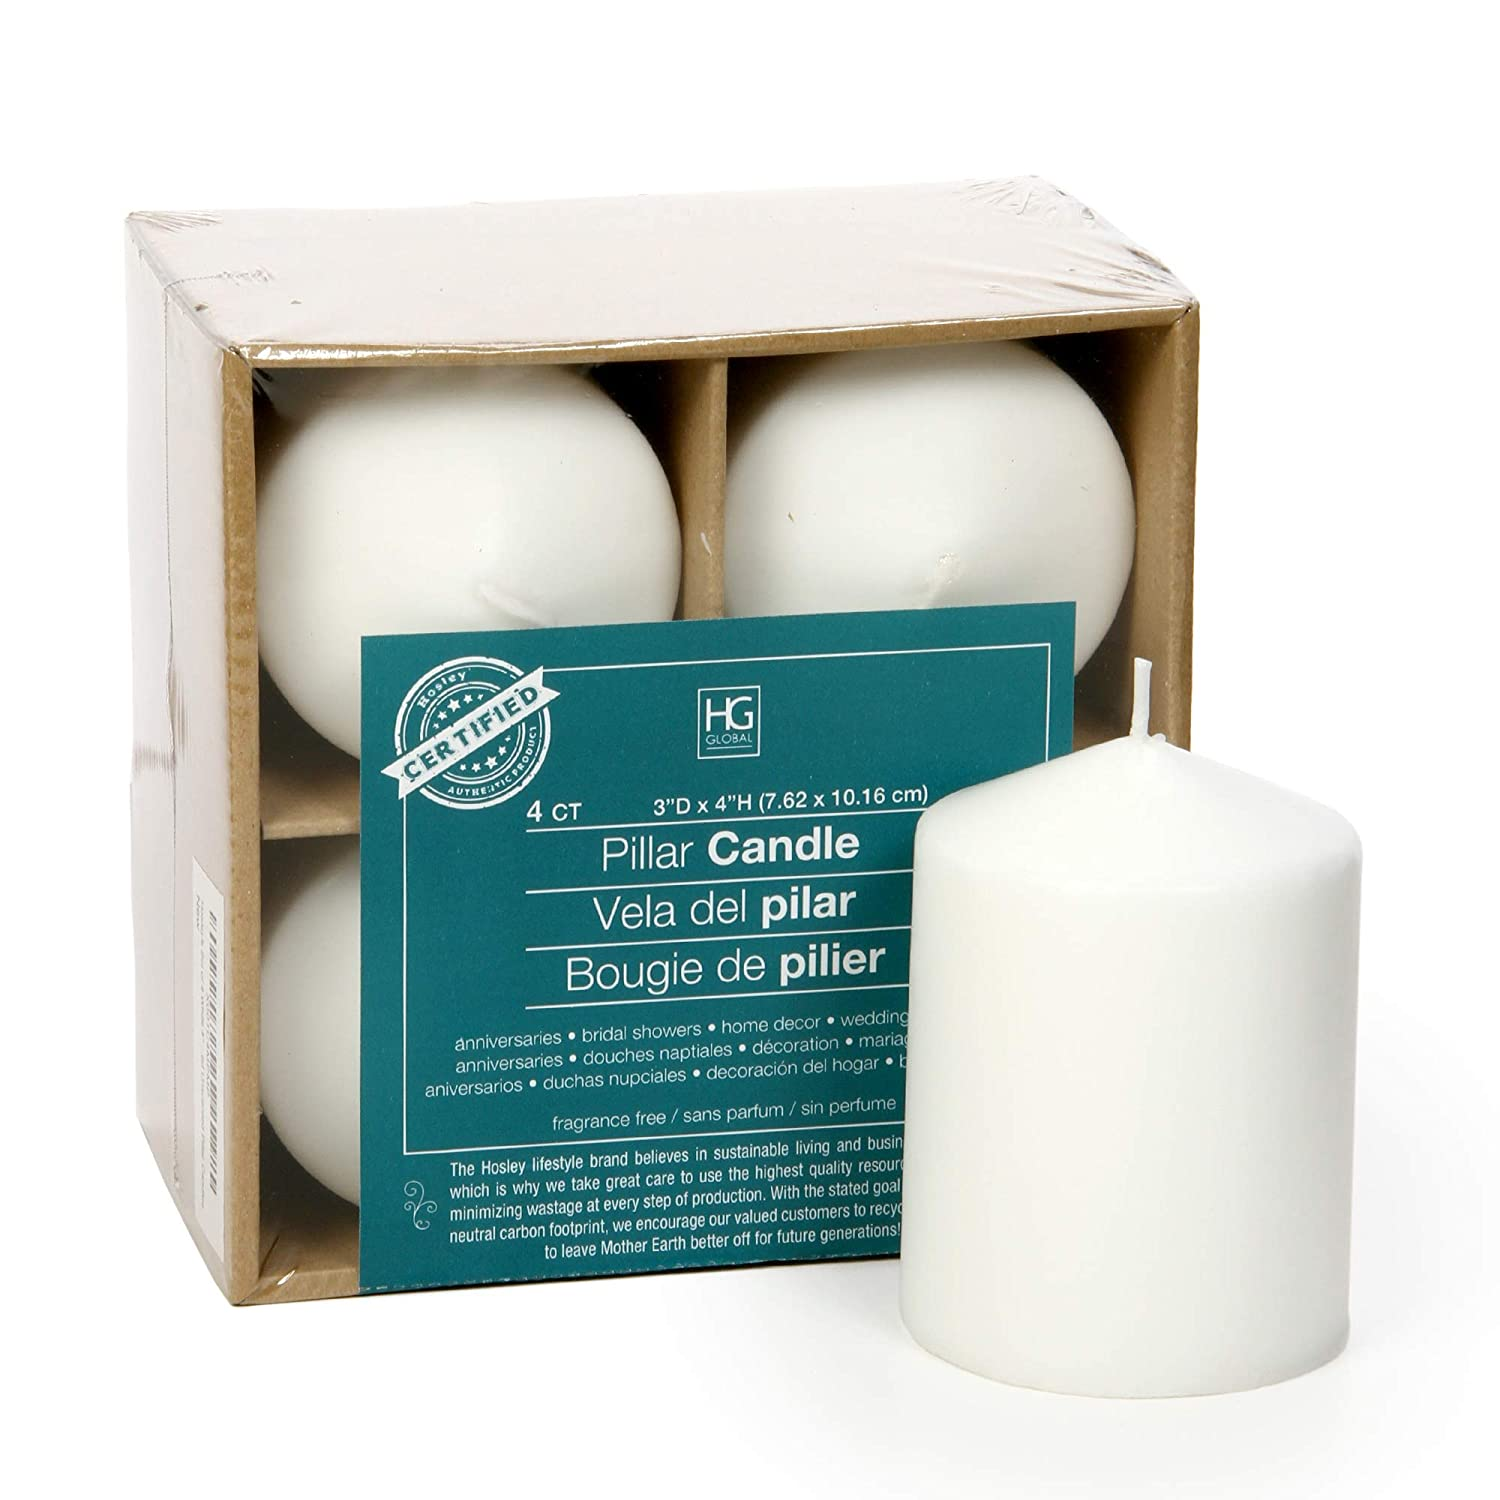 Hosley's Set of 4 White 4 High Unscented Pillar Candles. Bulk Buy Wax Blend. Ideal for Wedding, Emergency Lanterns, Spa, Aromatherapy, Party, Reiki, Candle Gardens O3 HG GLOBAL